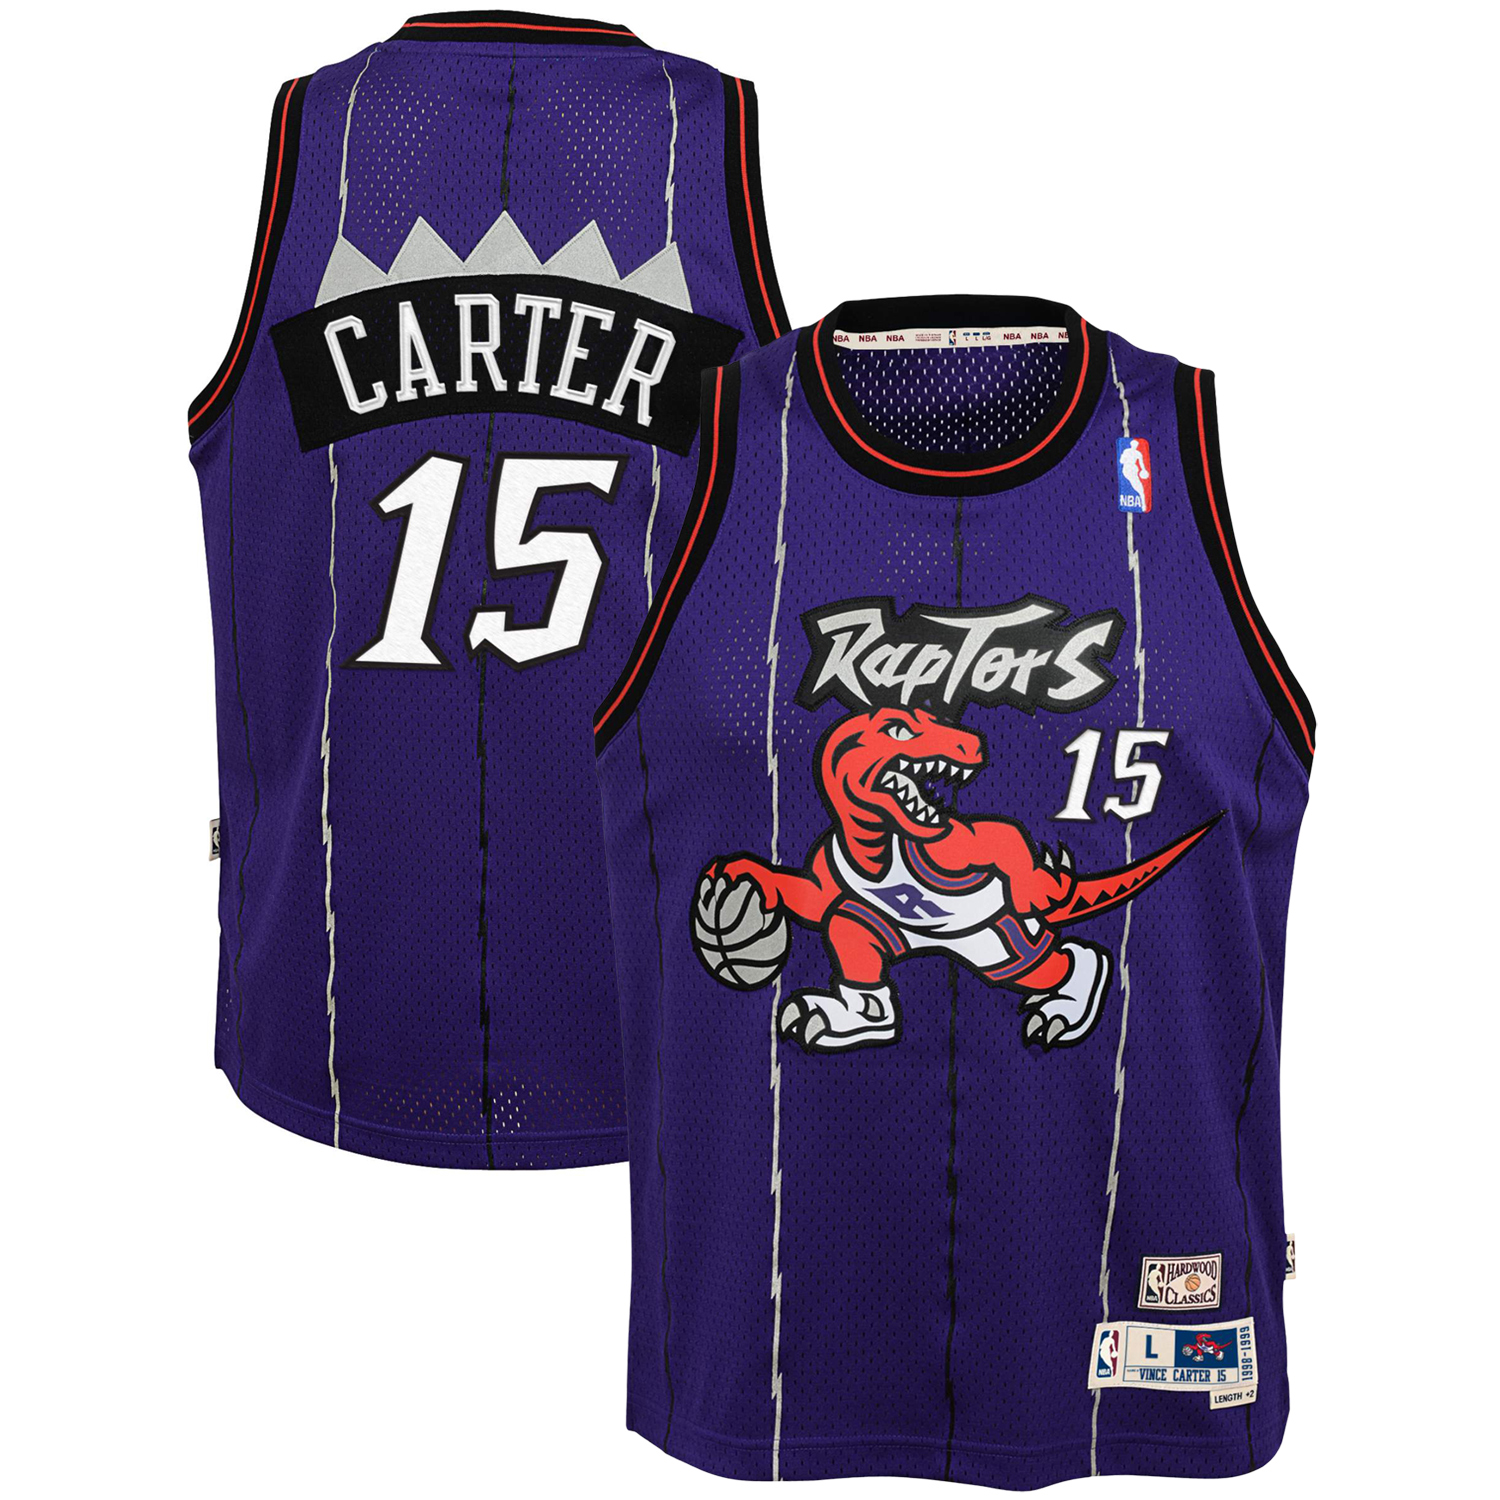 24da6aadd40 Vince Carter Toronto Raptors Mitchell & Ness Youth Hardwood Classics  Swingman Throwback Jersey - Purple - Walmart.com